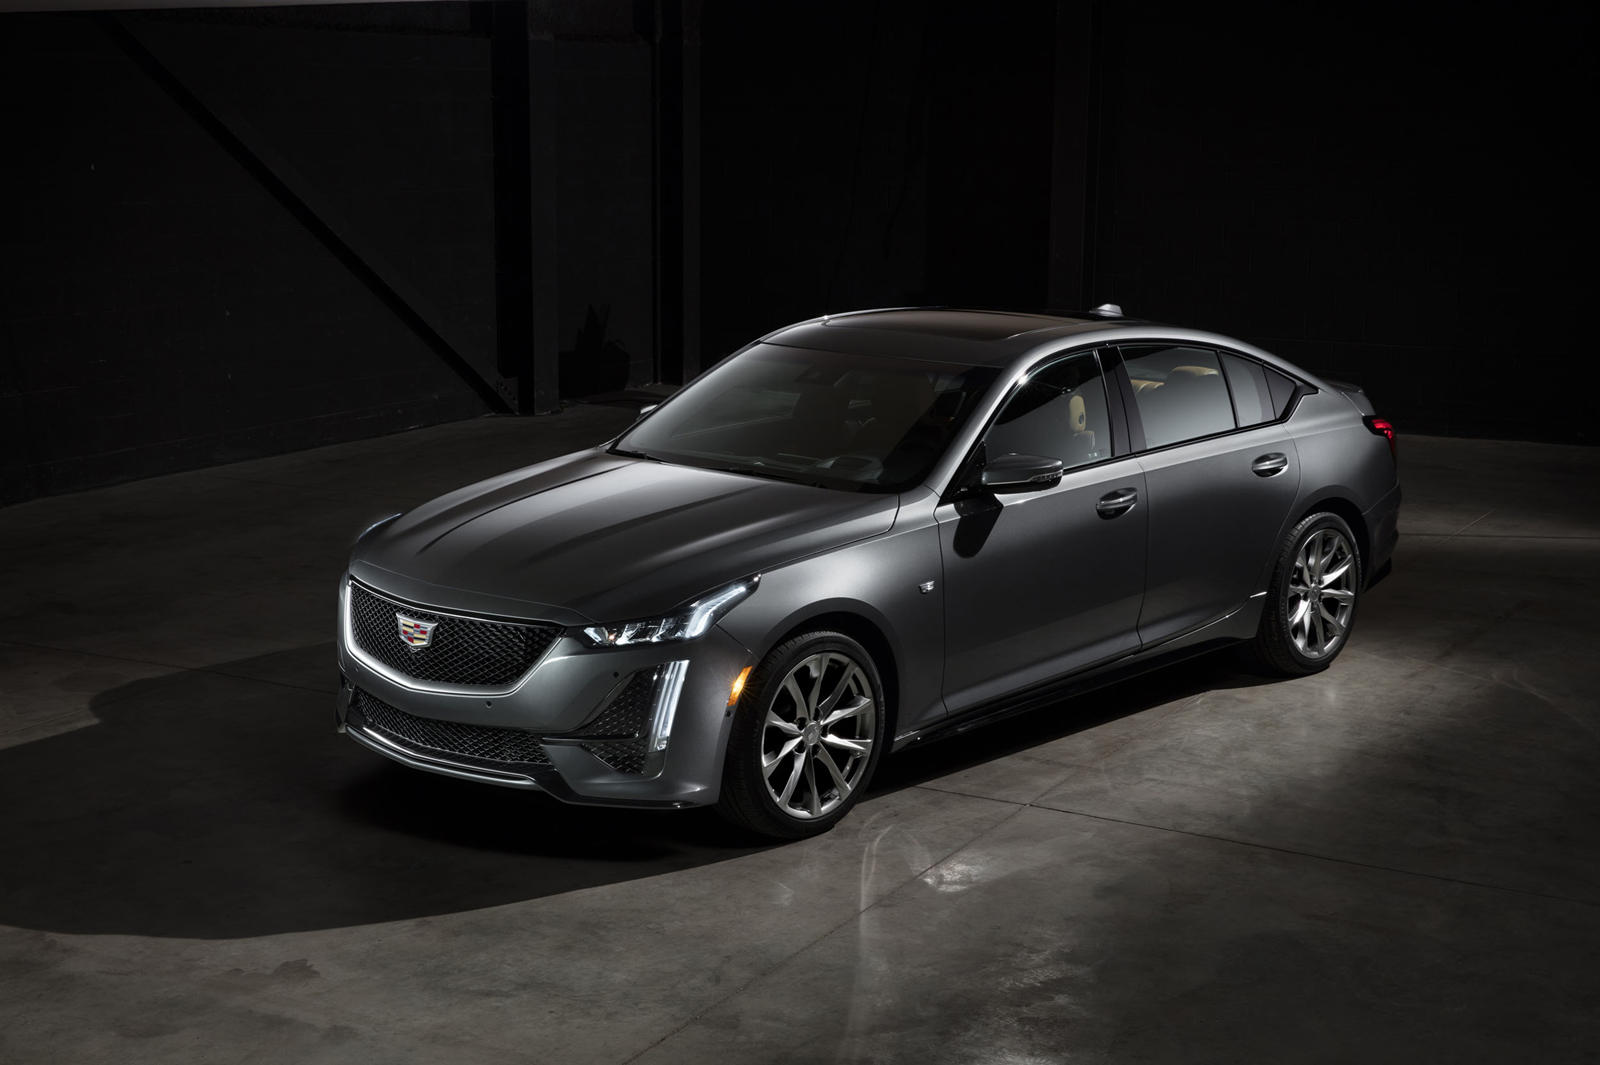 2020 cadillac ct5 review, ratings, mpg and prices